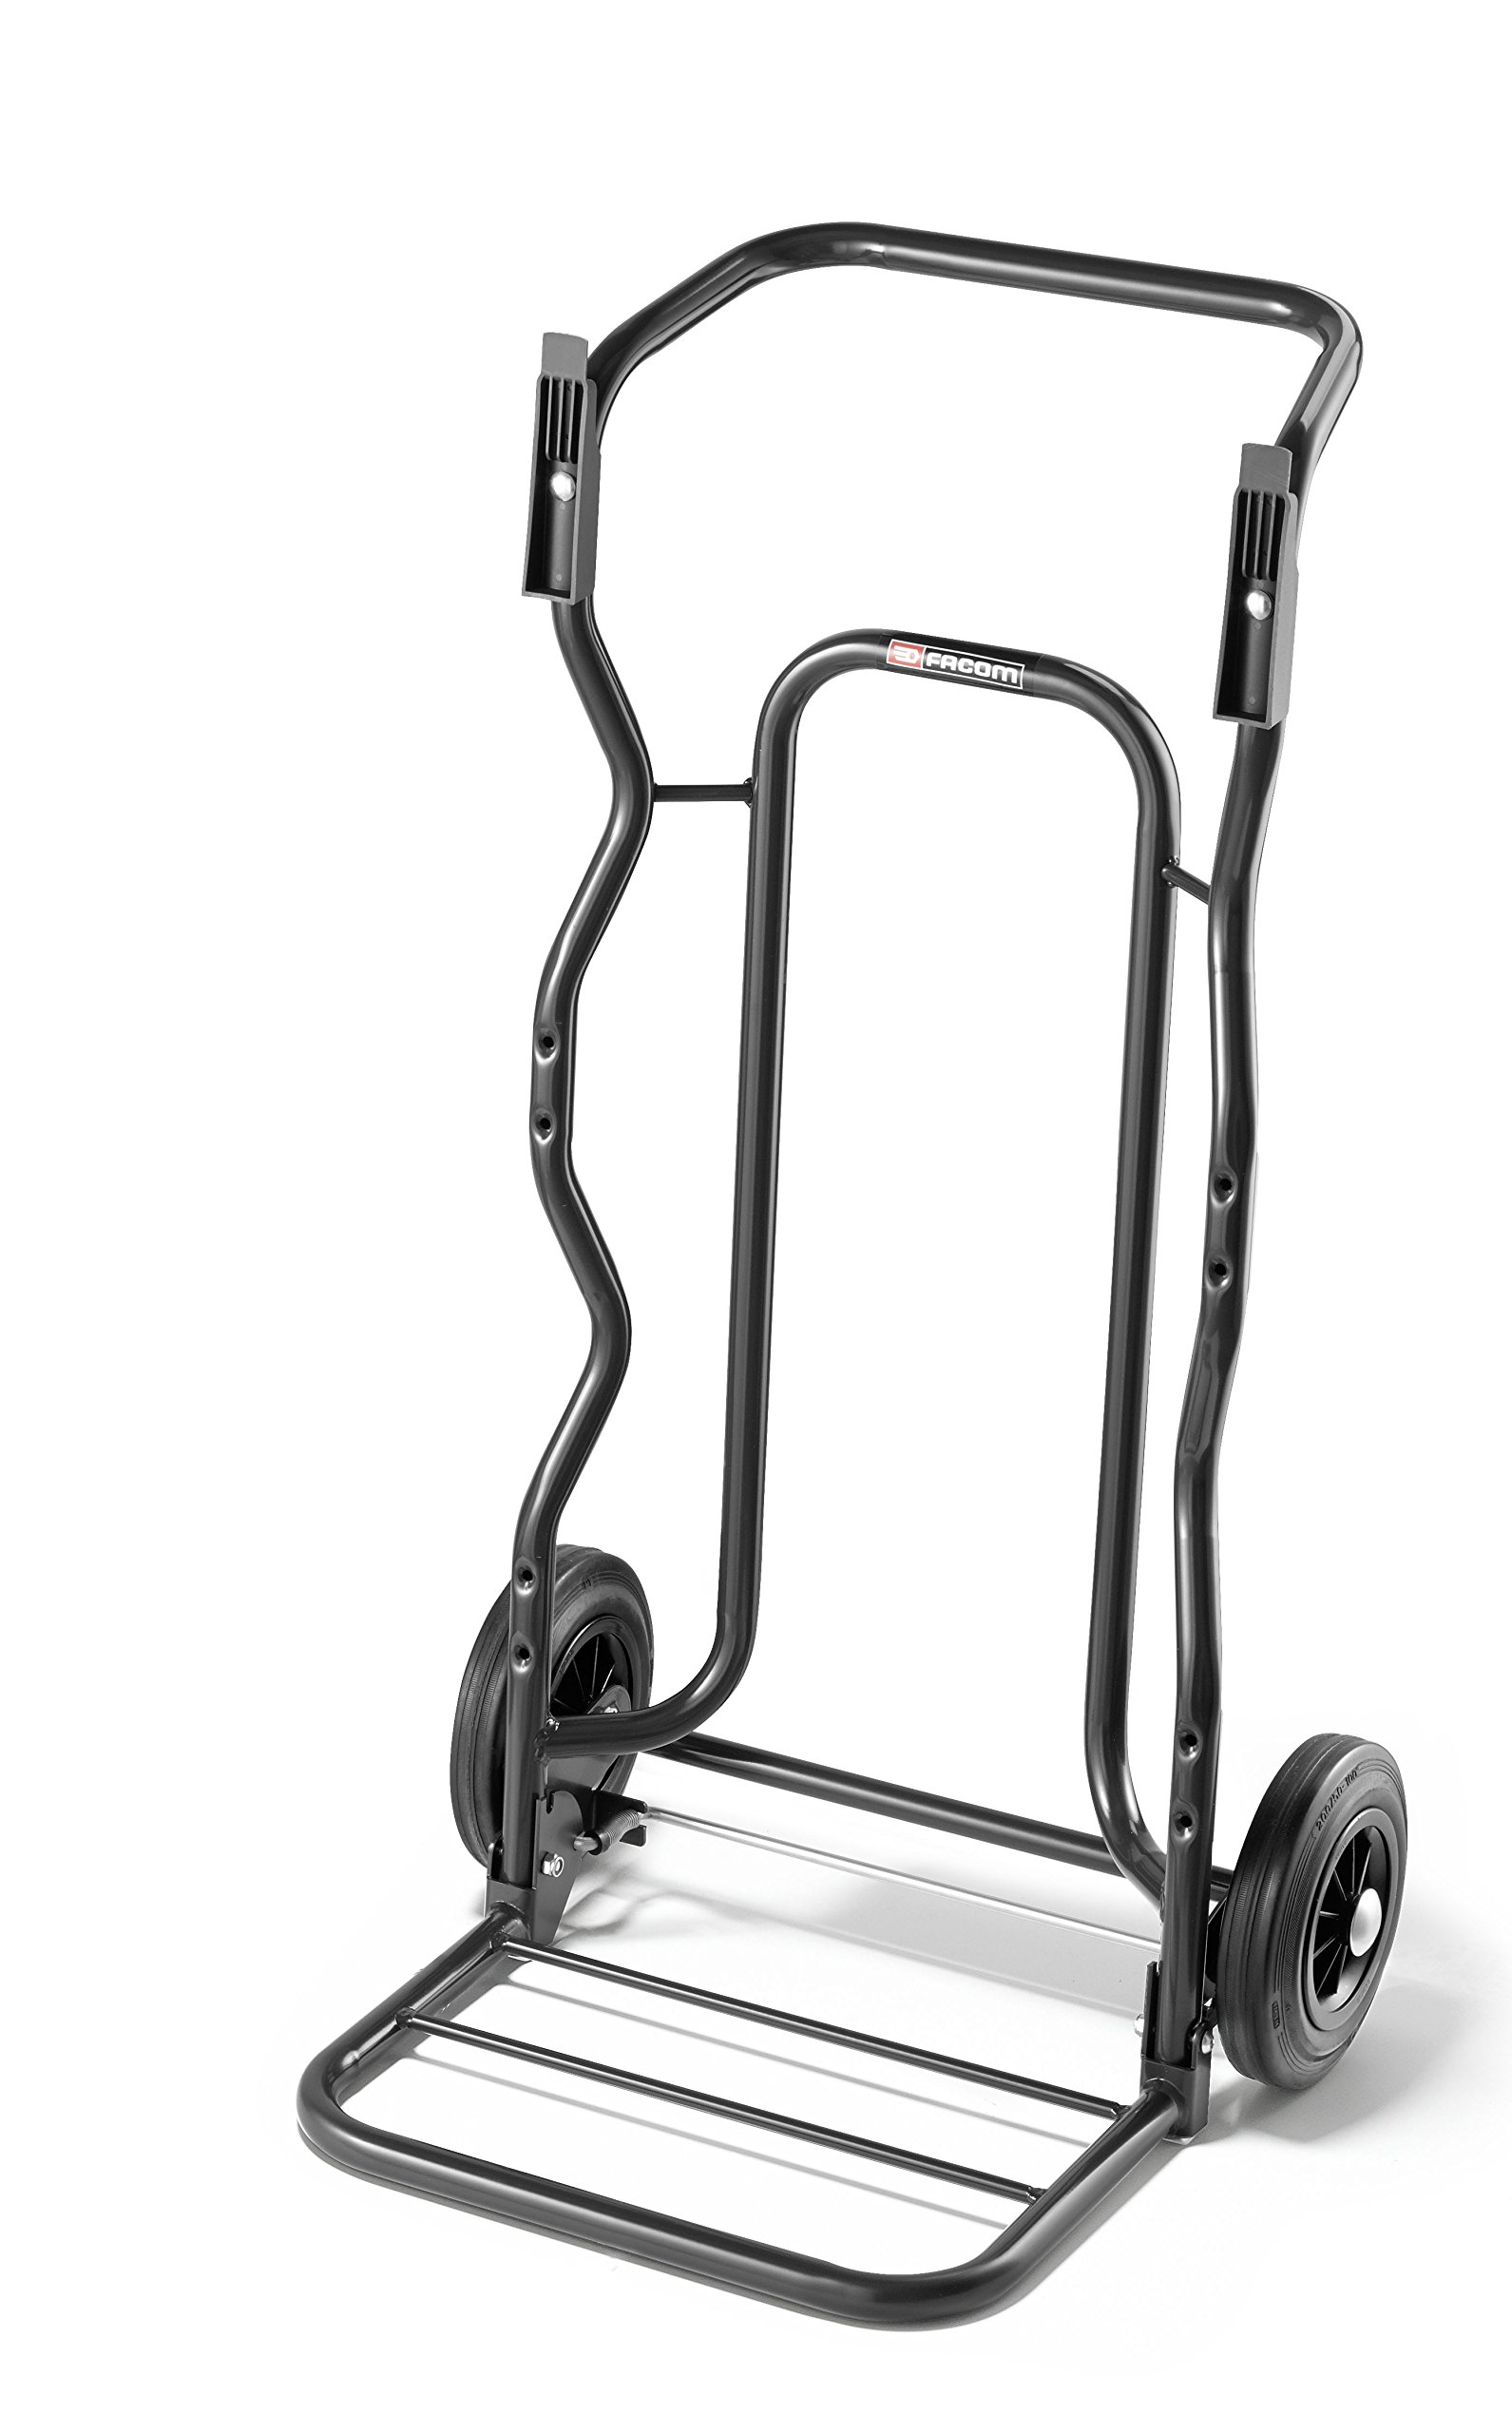 Facom BT.HT1PG Multi-Purpose DeliveryTrolley by Facom (Image #2)